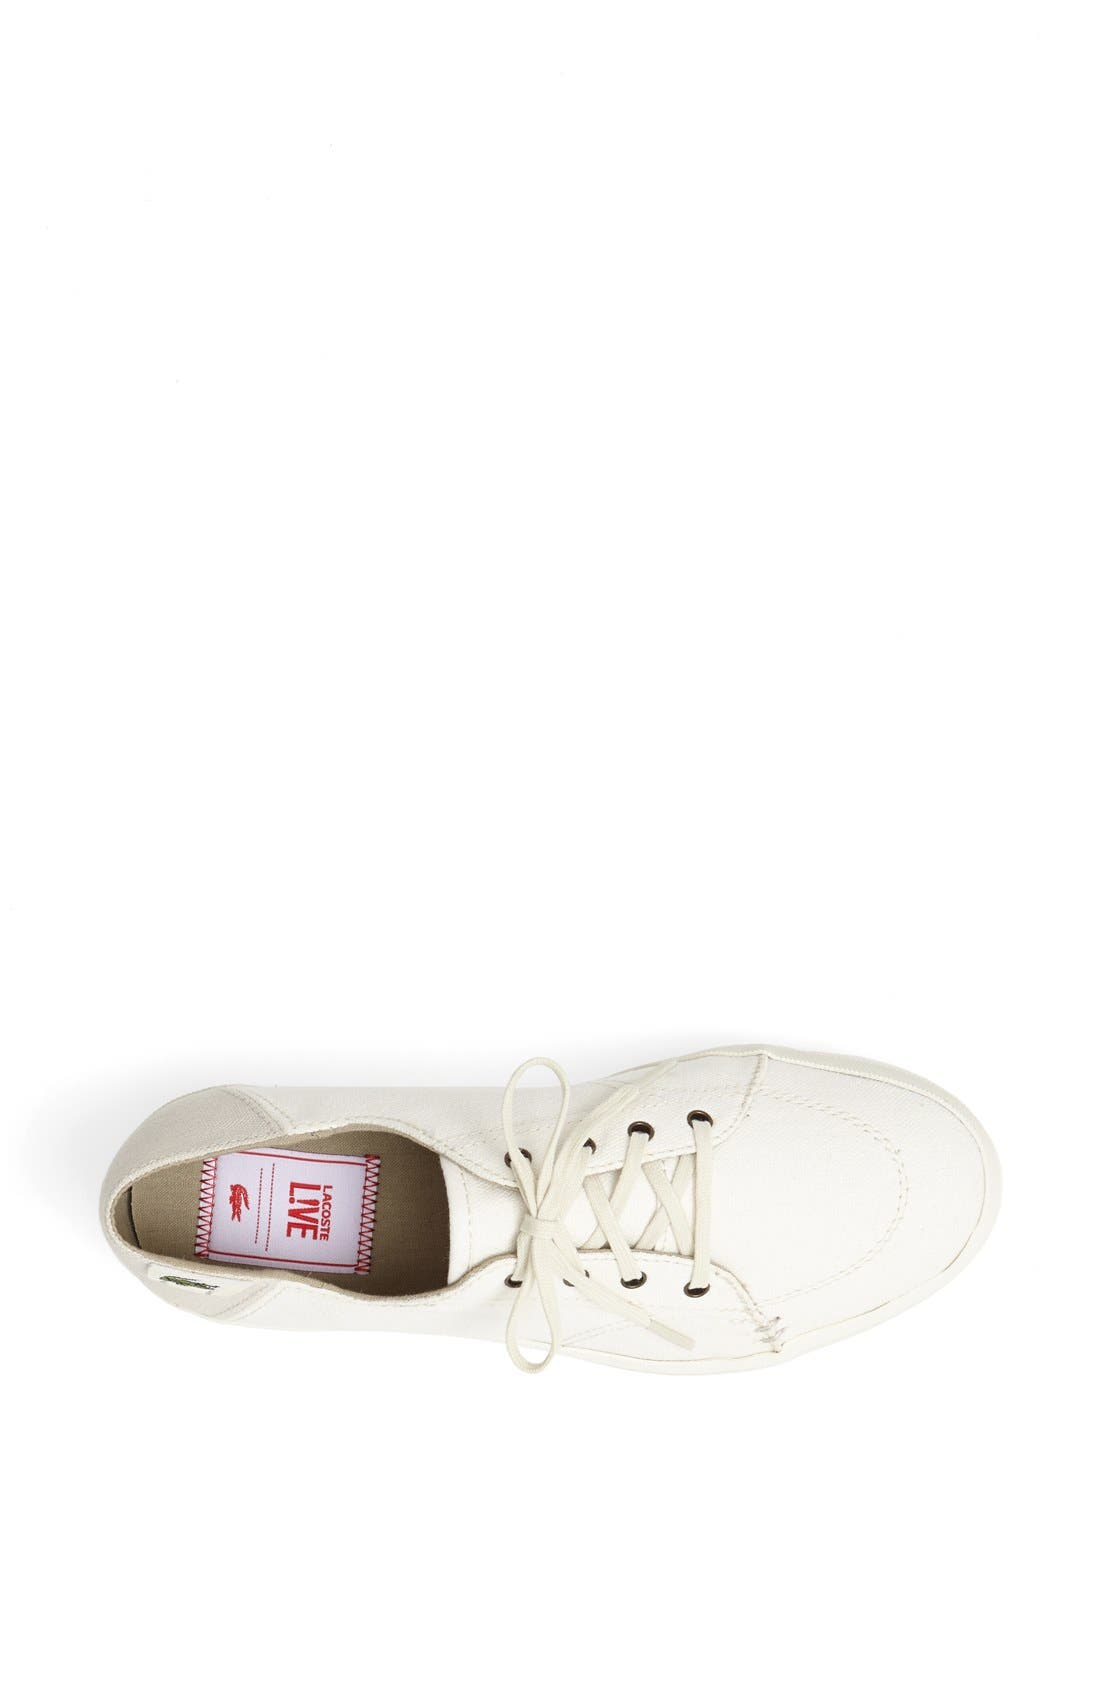 Alternate Image 4  - Lacoste 'Kirton' Platform Sneaker (Women) (Online Exclusive)